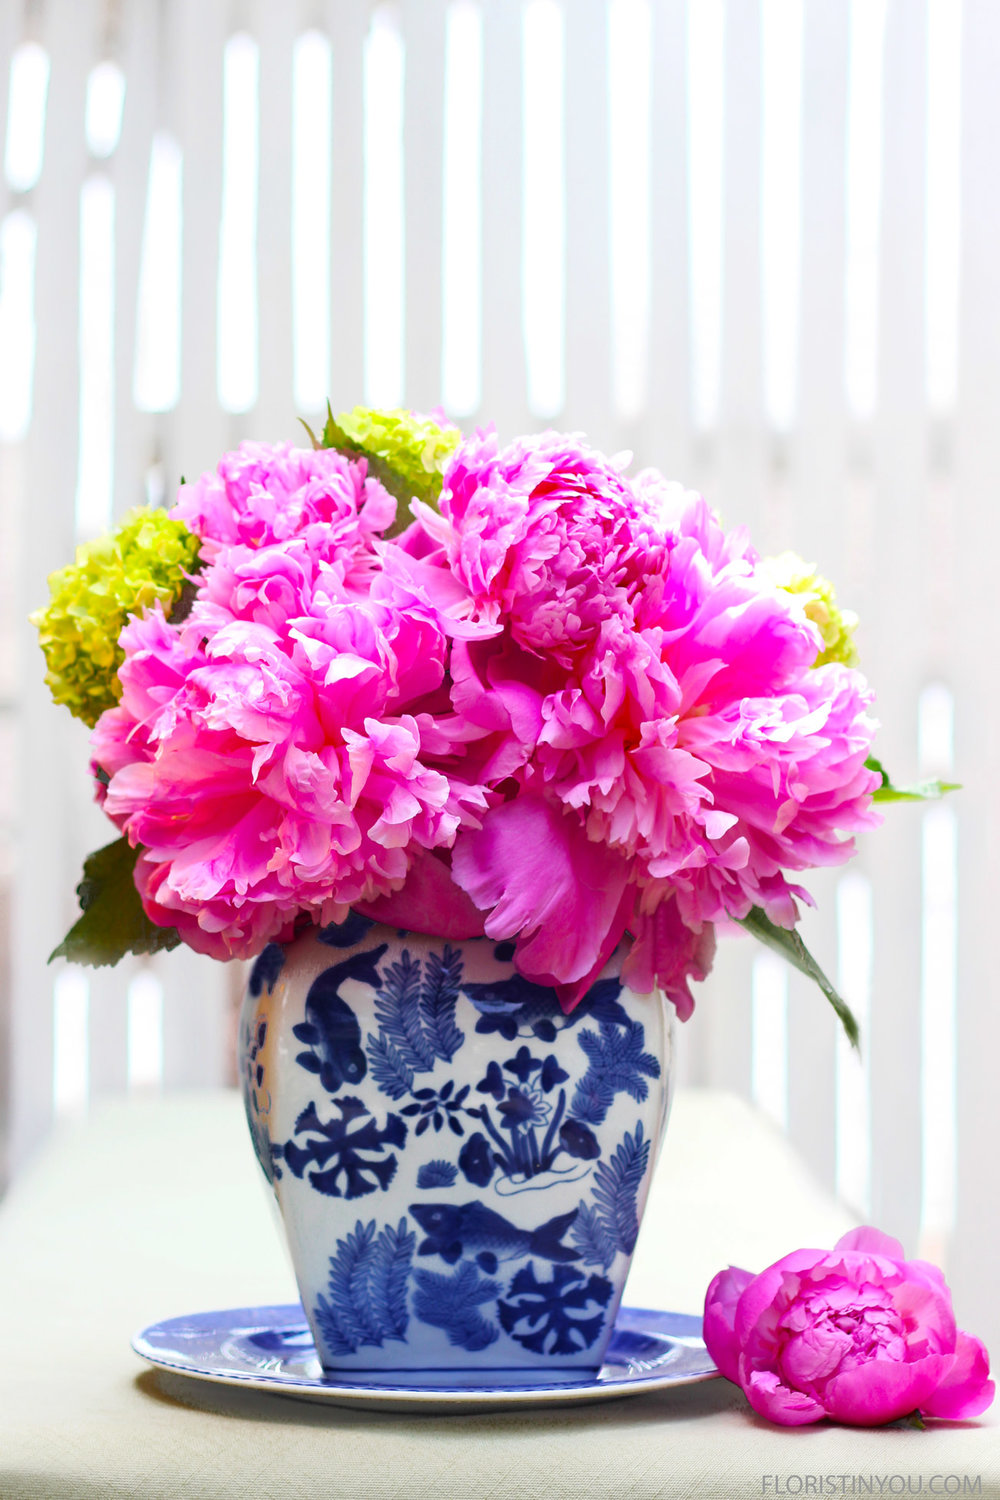 "Large Peony and Hydrangea Arrangement                     Normal   0           false   false   false     EN-US   JA   X-NONE                                                                                                                                                                                                                                                                                                                                                                              /* Style Definitions */ table.MsoNormalTable 	{mso-style-name:""Table Normal""; 	mso-tstyle-rowband-size:0; 	mso-tstyle-colband-size:0; 	mso-style-noshow:yes; 	mso-style-priority:99; 	mso-style-parent:""""; 	mso-padding-alt:0in 5.4pt 0in 5.4pt; 	mso-para-margin:0in; 	mso-para-margin-bottom:.0001pt; 	mso-pagination:widow-orphan; 	font-size:12.0pt; 	font-family:Cambria; 	mso-ascii-font-family:Cambria; 	mso-ascii-theme-font:minor-latin; 	mso-hansi-font-family:Cambria; 	mso-hansi-theme-font:minor-latin;}"